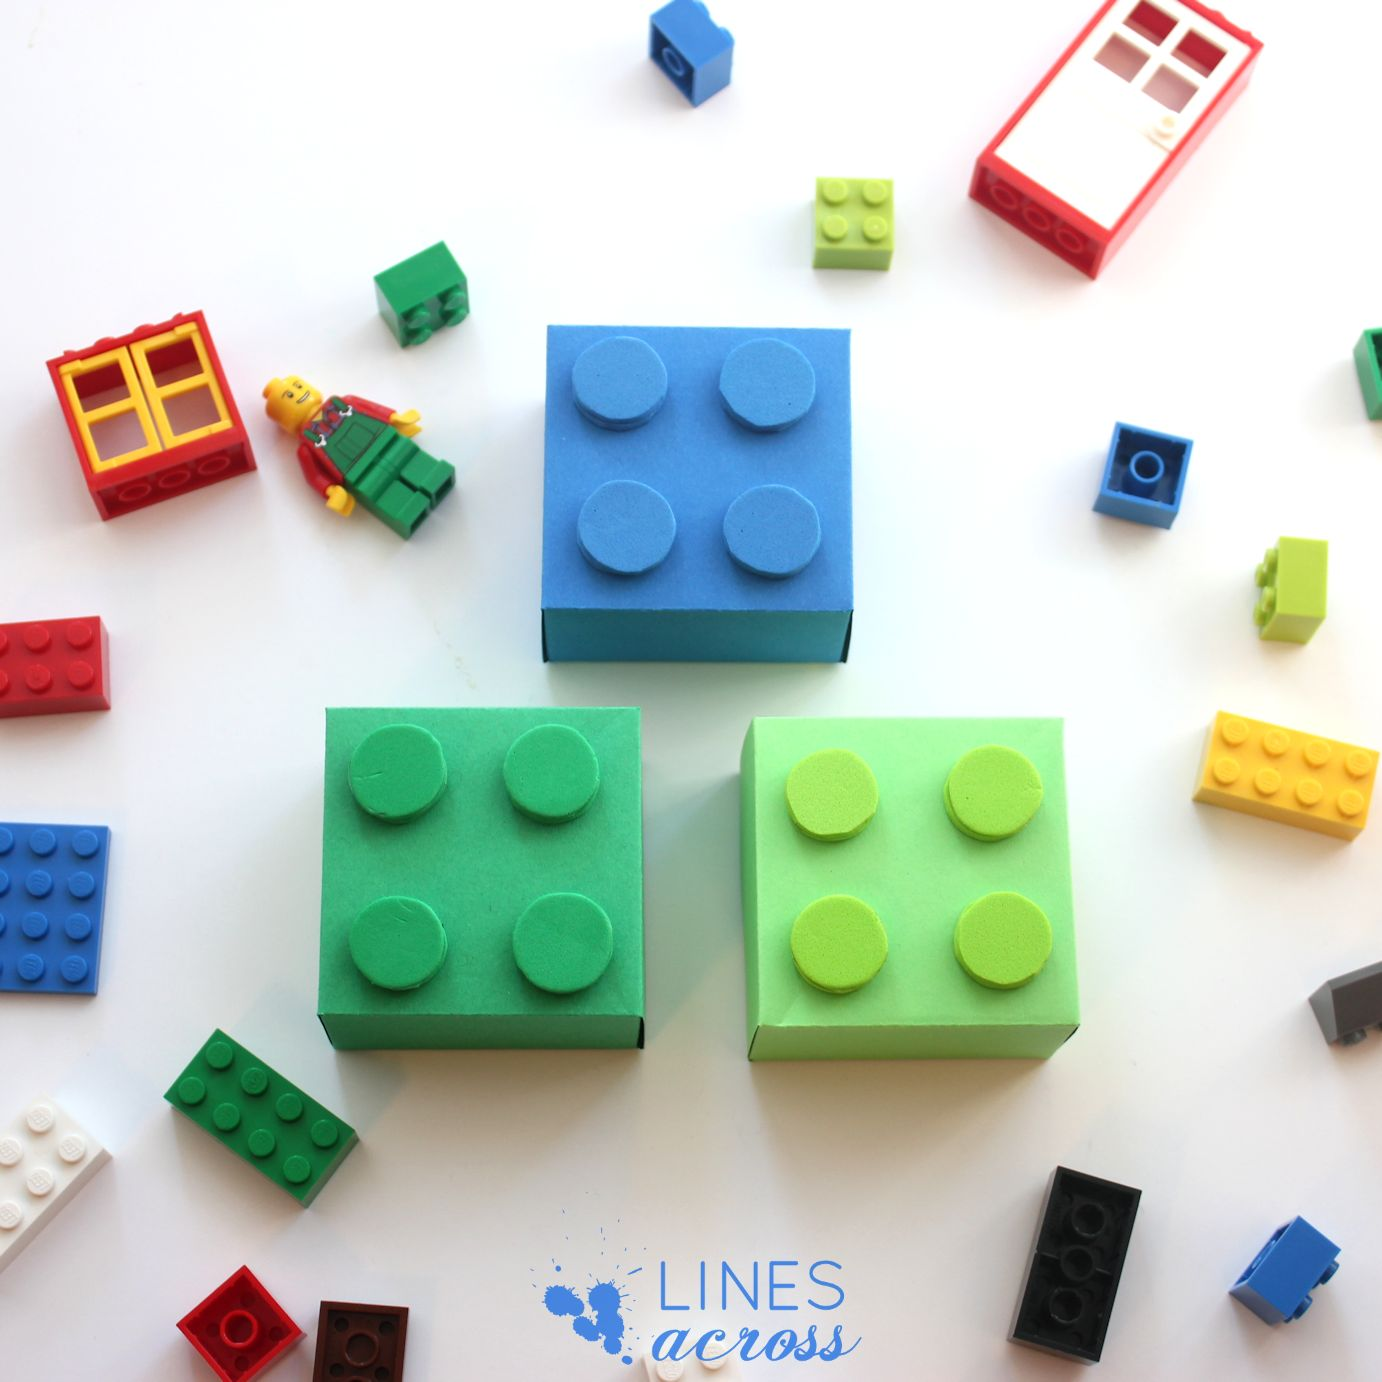 Lego Gift Boxes (With Free Templates) - Lines Across